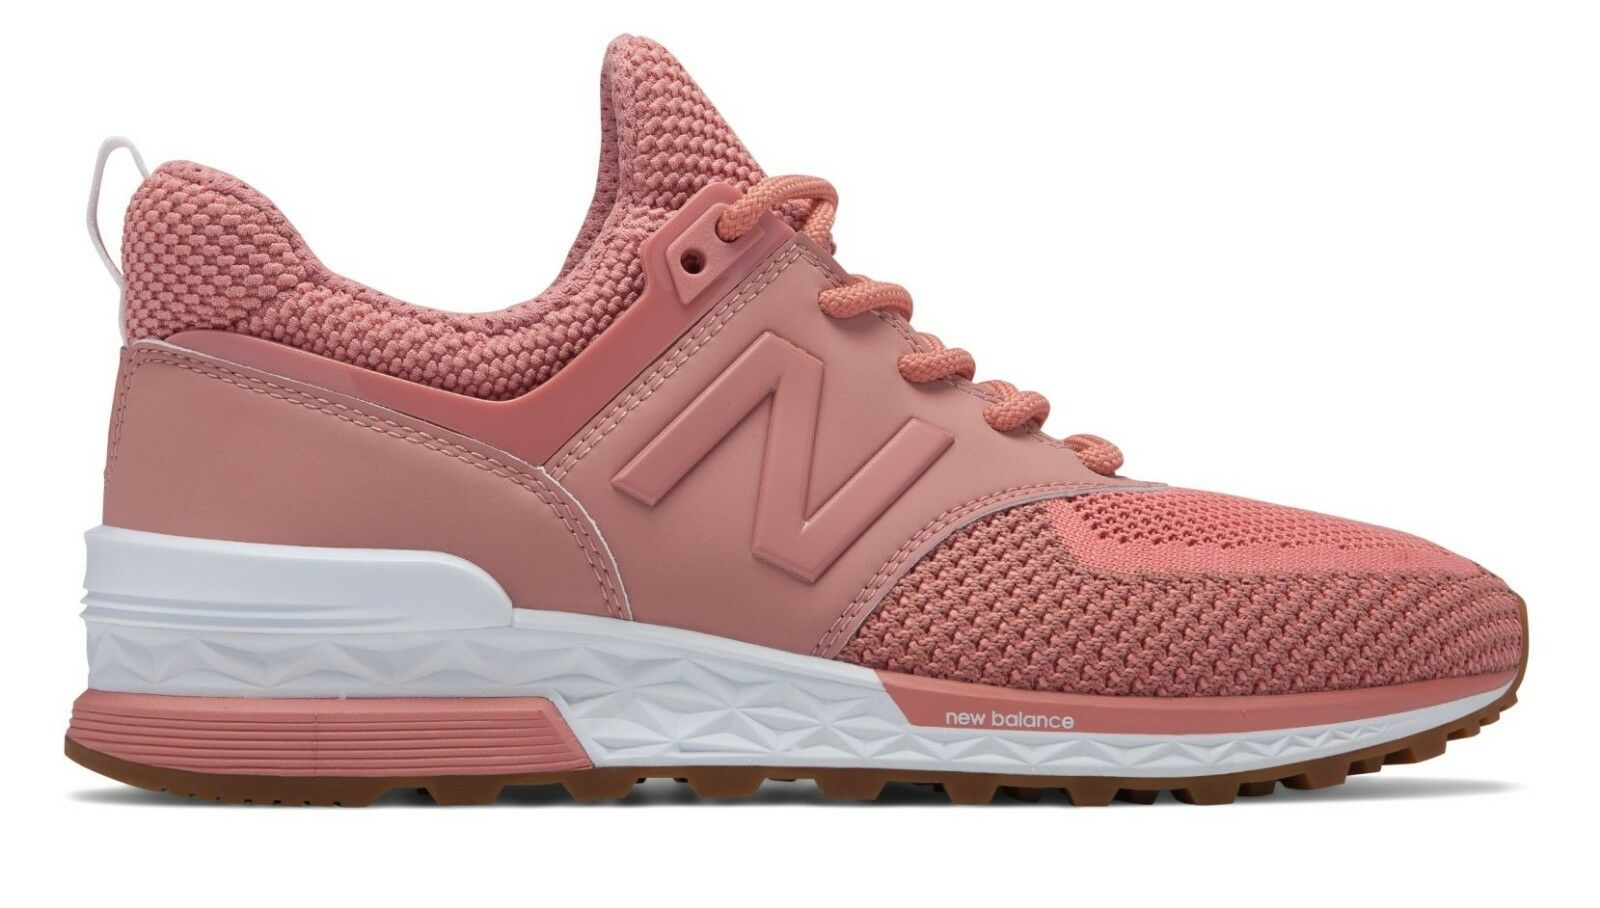 NEW BALANCE WOMEN WS574WC 574 SPORT DUSTED PEACH PINK Lifestyle Sneakers 6-10